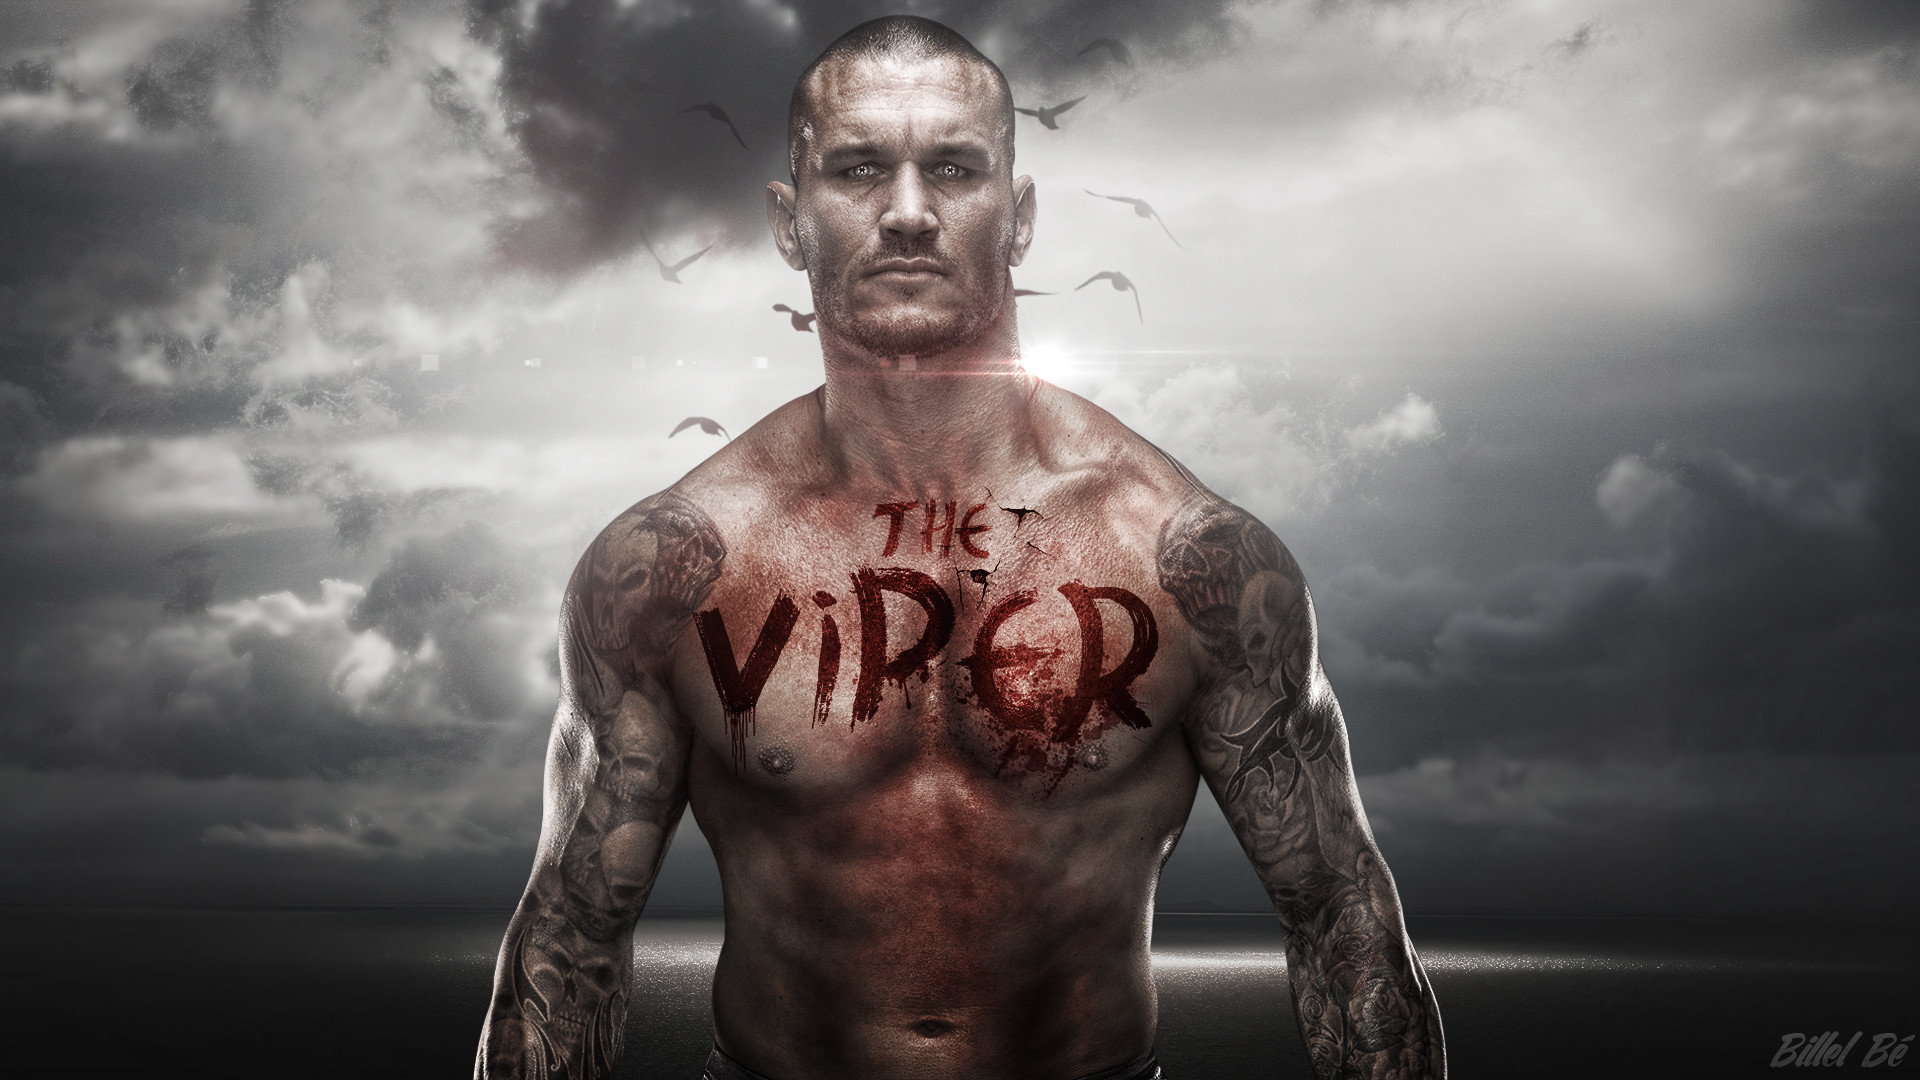 1920x1200 Pix For Randy Orton Viper Wallpaper